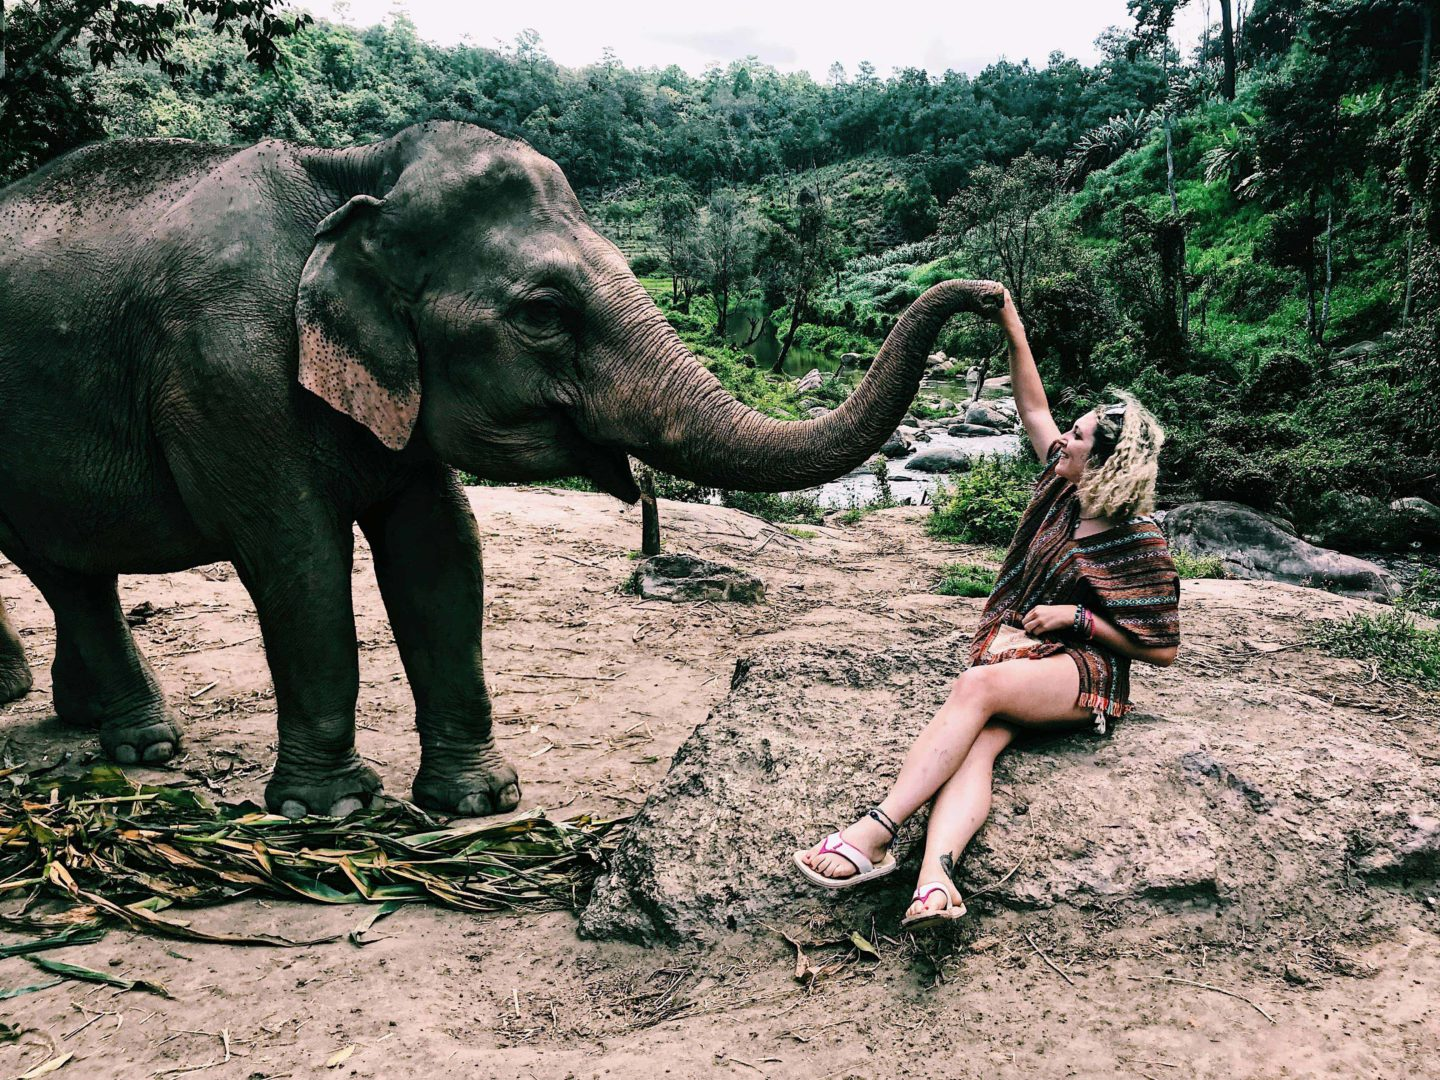 Is the Elephant Jungle Sanctuary in Chiang Mai ethical?